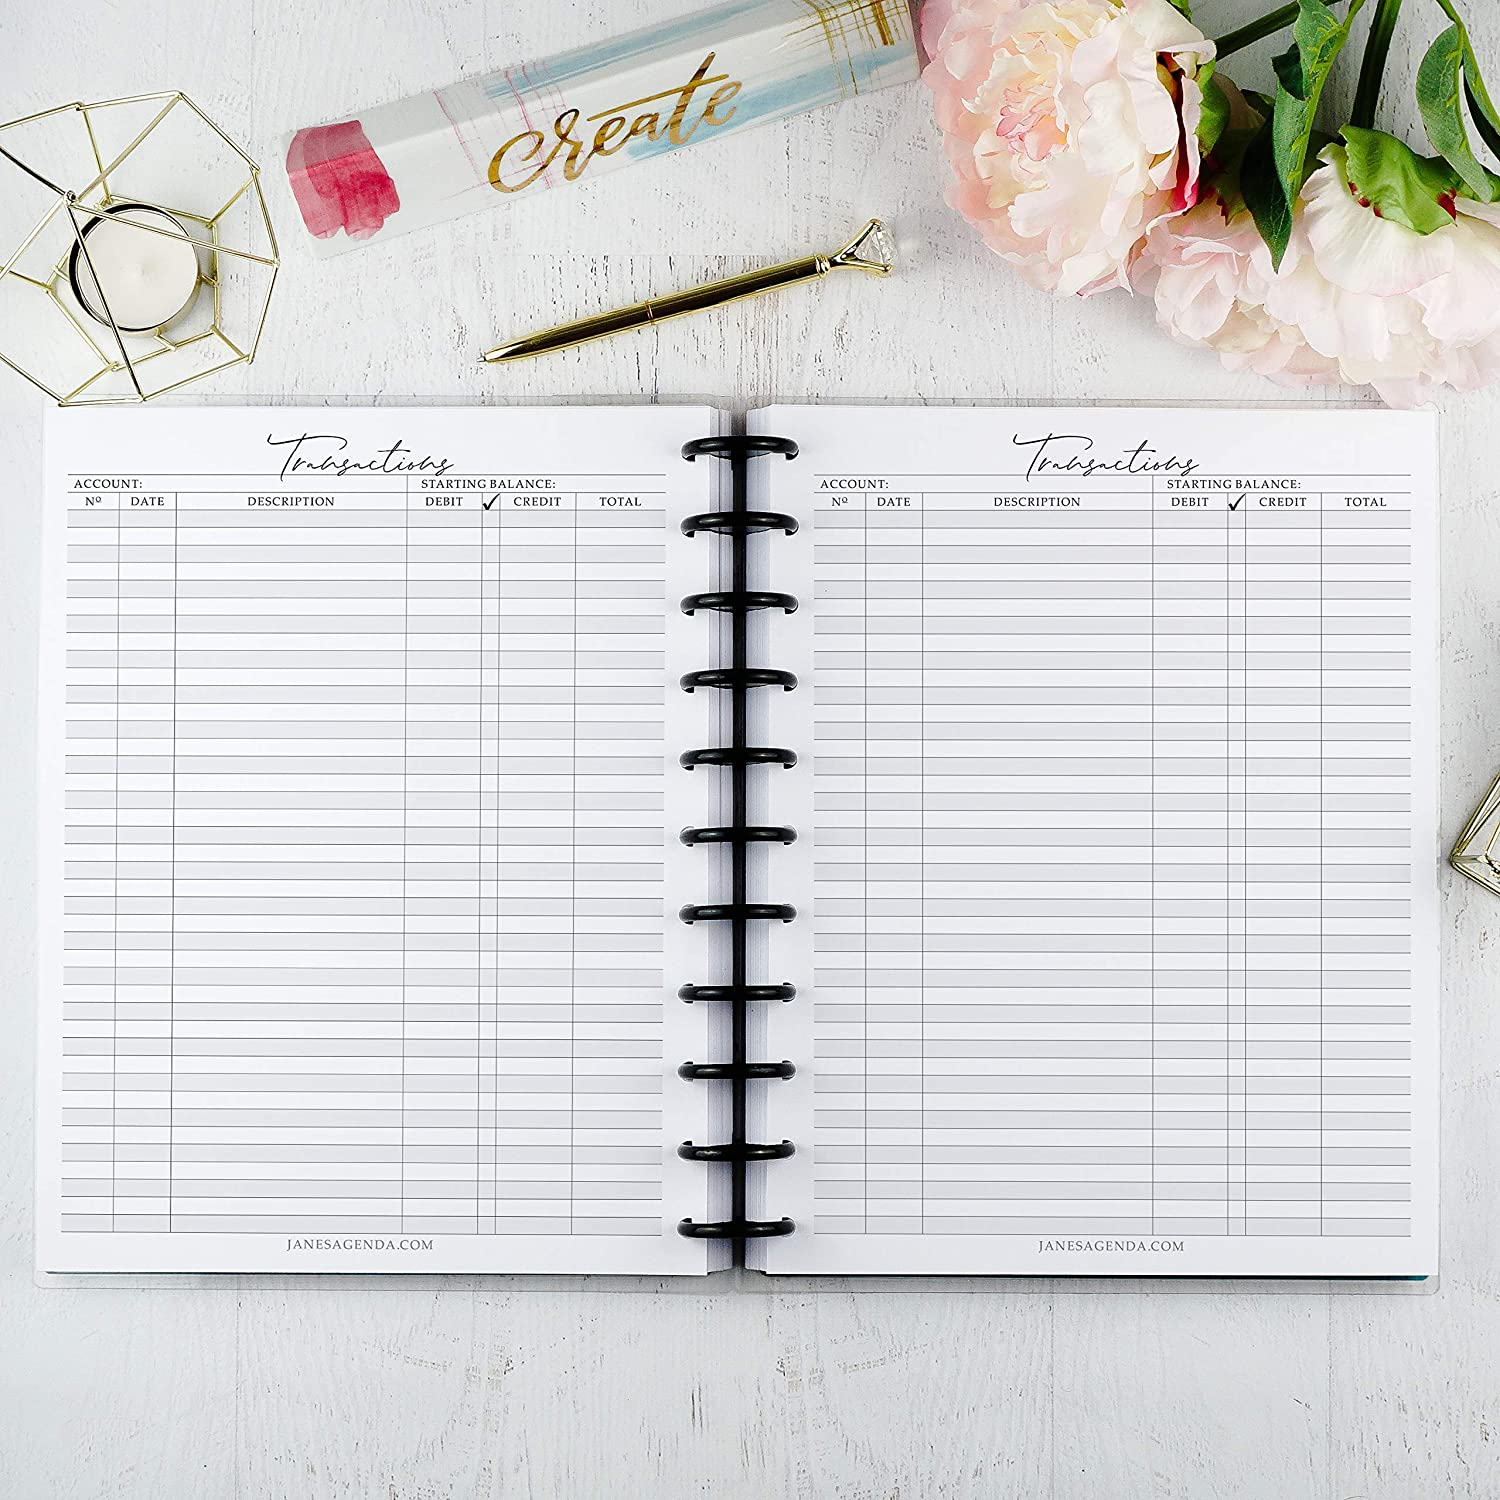 Budgeting Planner Inserts for use with Letter Discbound 8.50 x 11 inches Financial Set 11 Disc